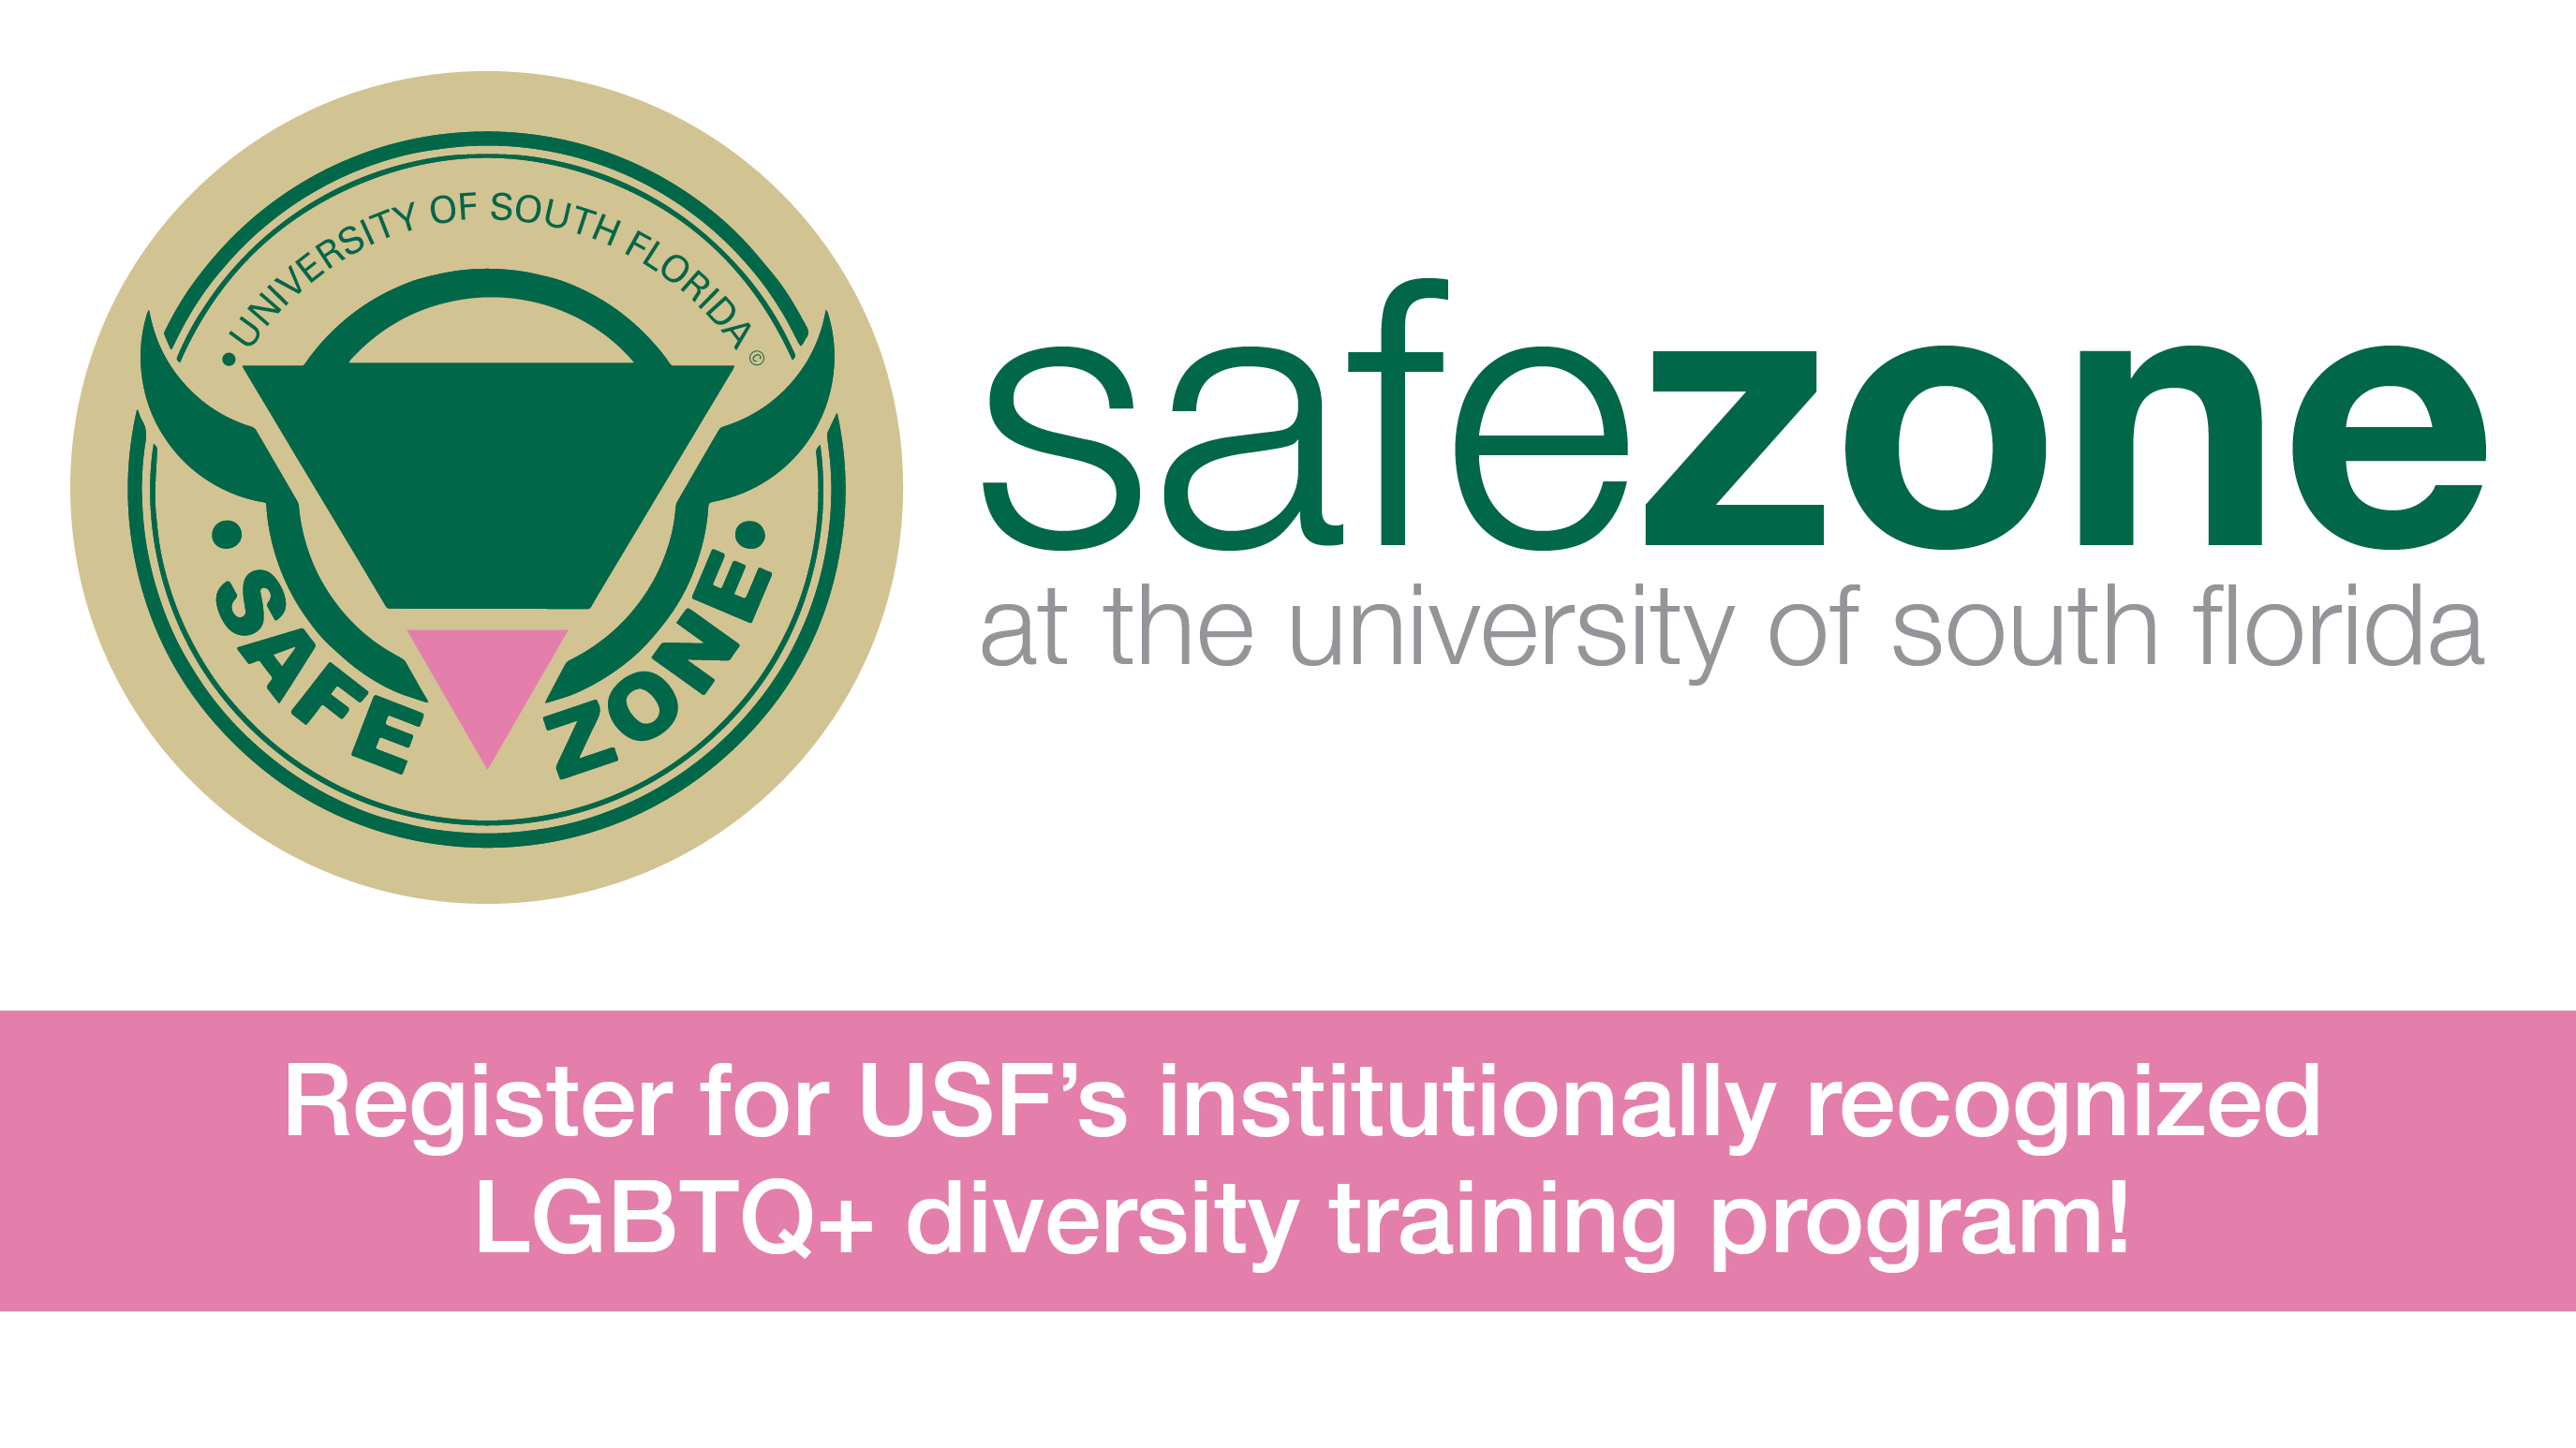 Safe Zone registration